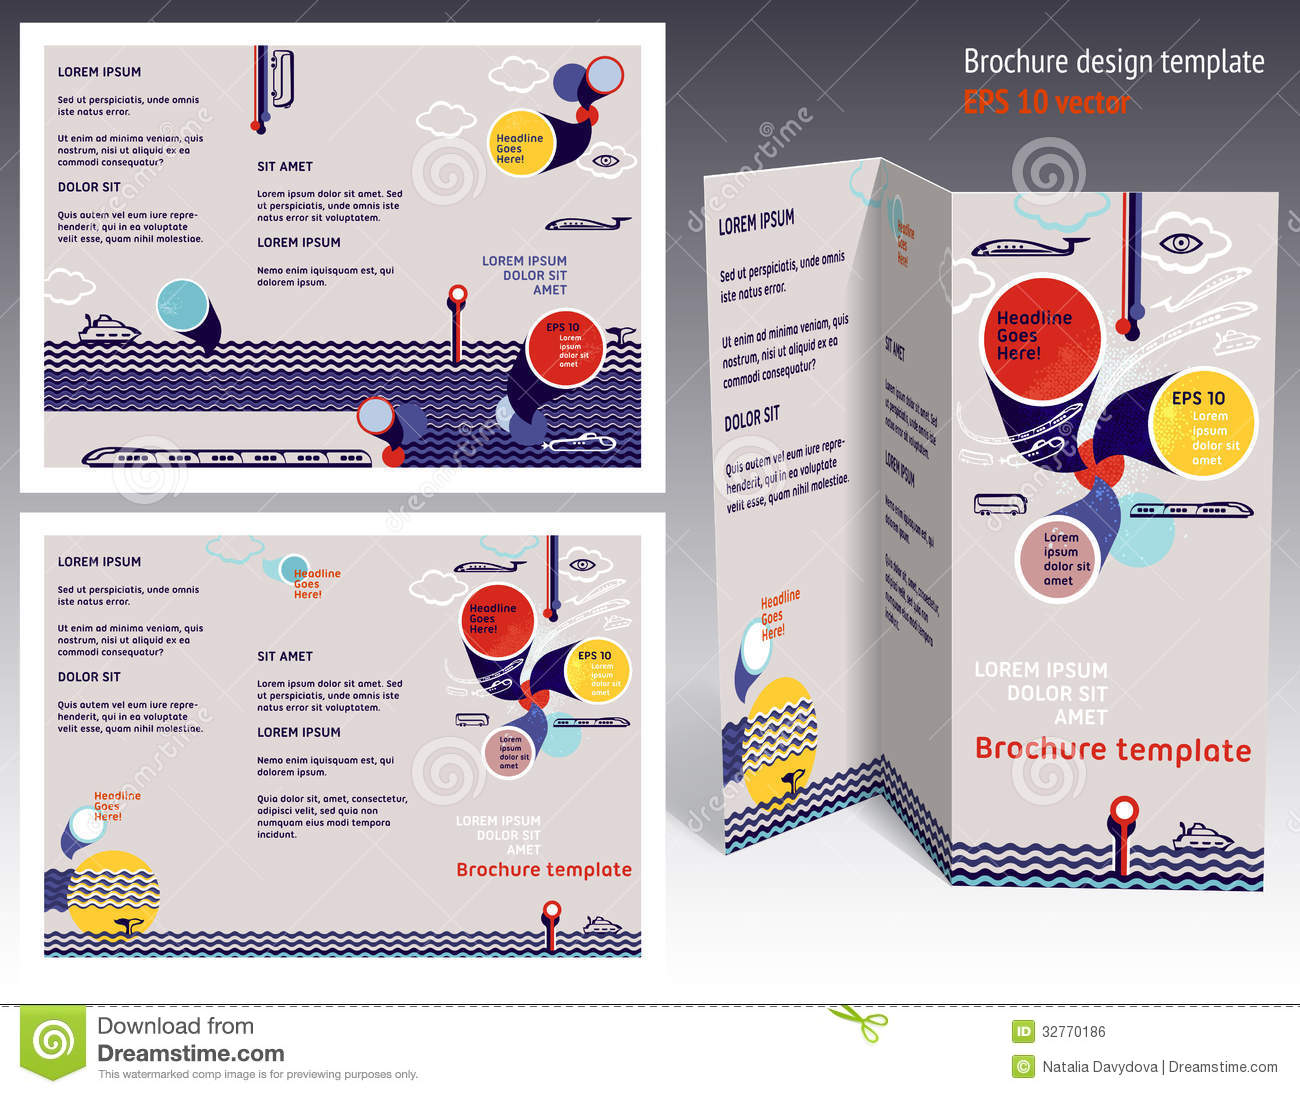 free brochure layout template - brochure booklet z fold 2 side layout editable design